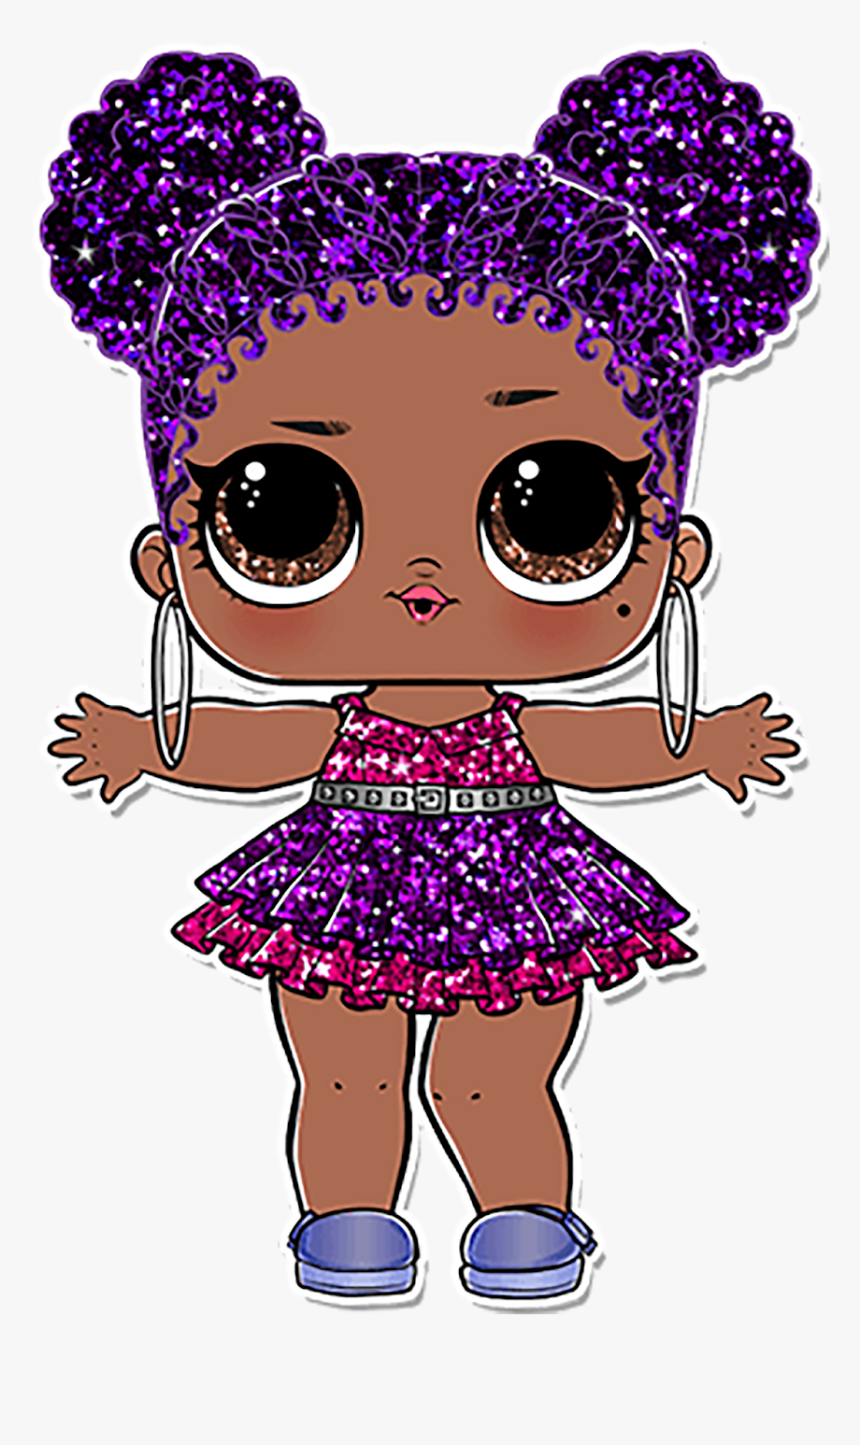 Lol Surprise Purple Queen Hd Png Download Transparent Png